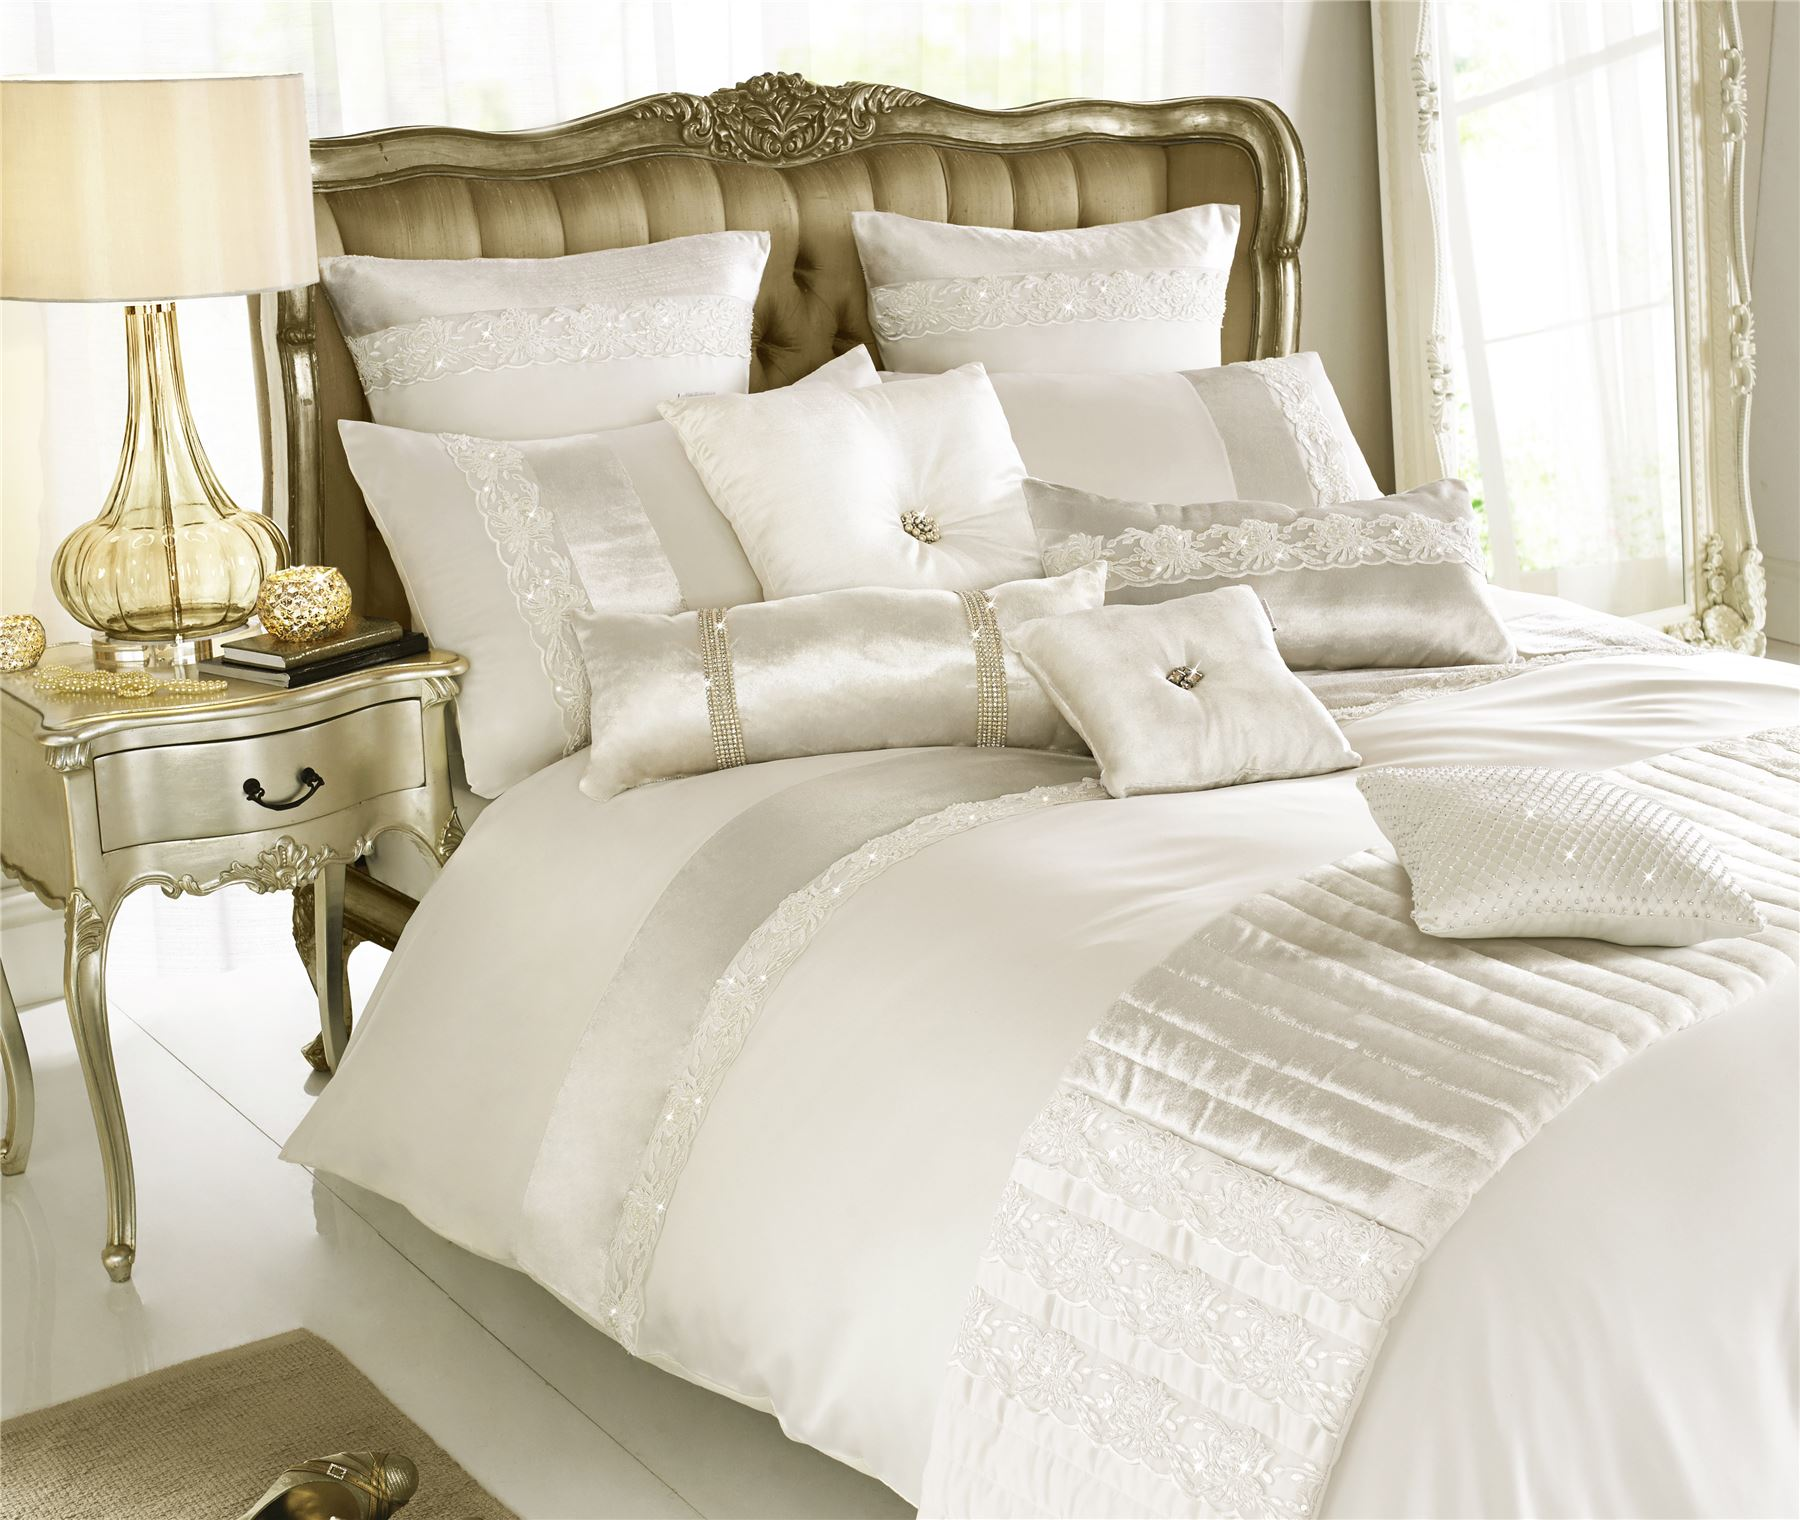 comforters bedding bed products amherst designer luxurious online set sets piece comforter living